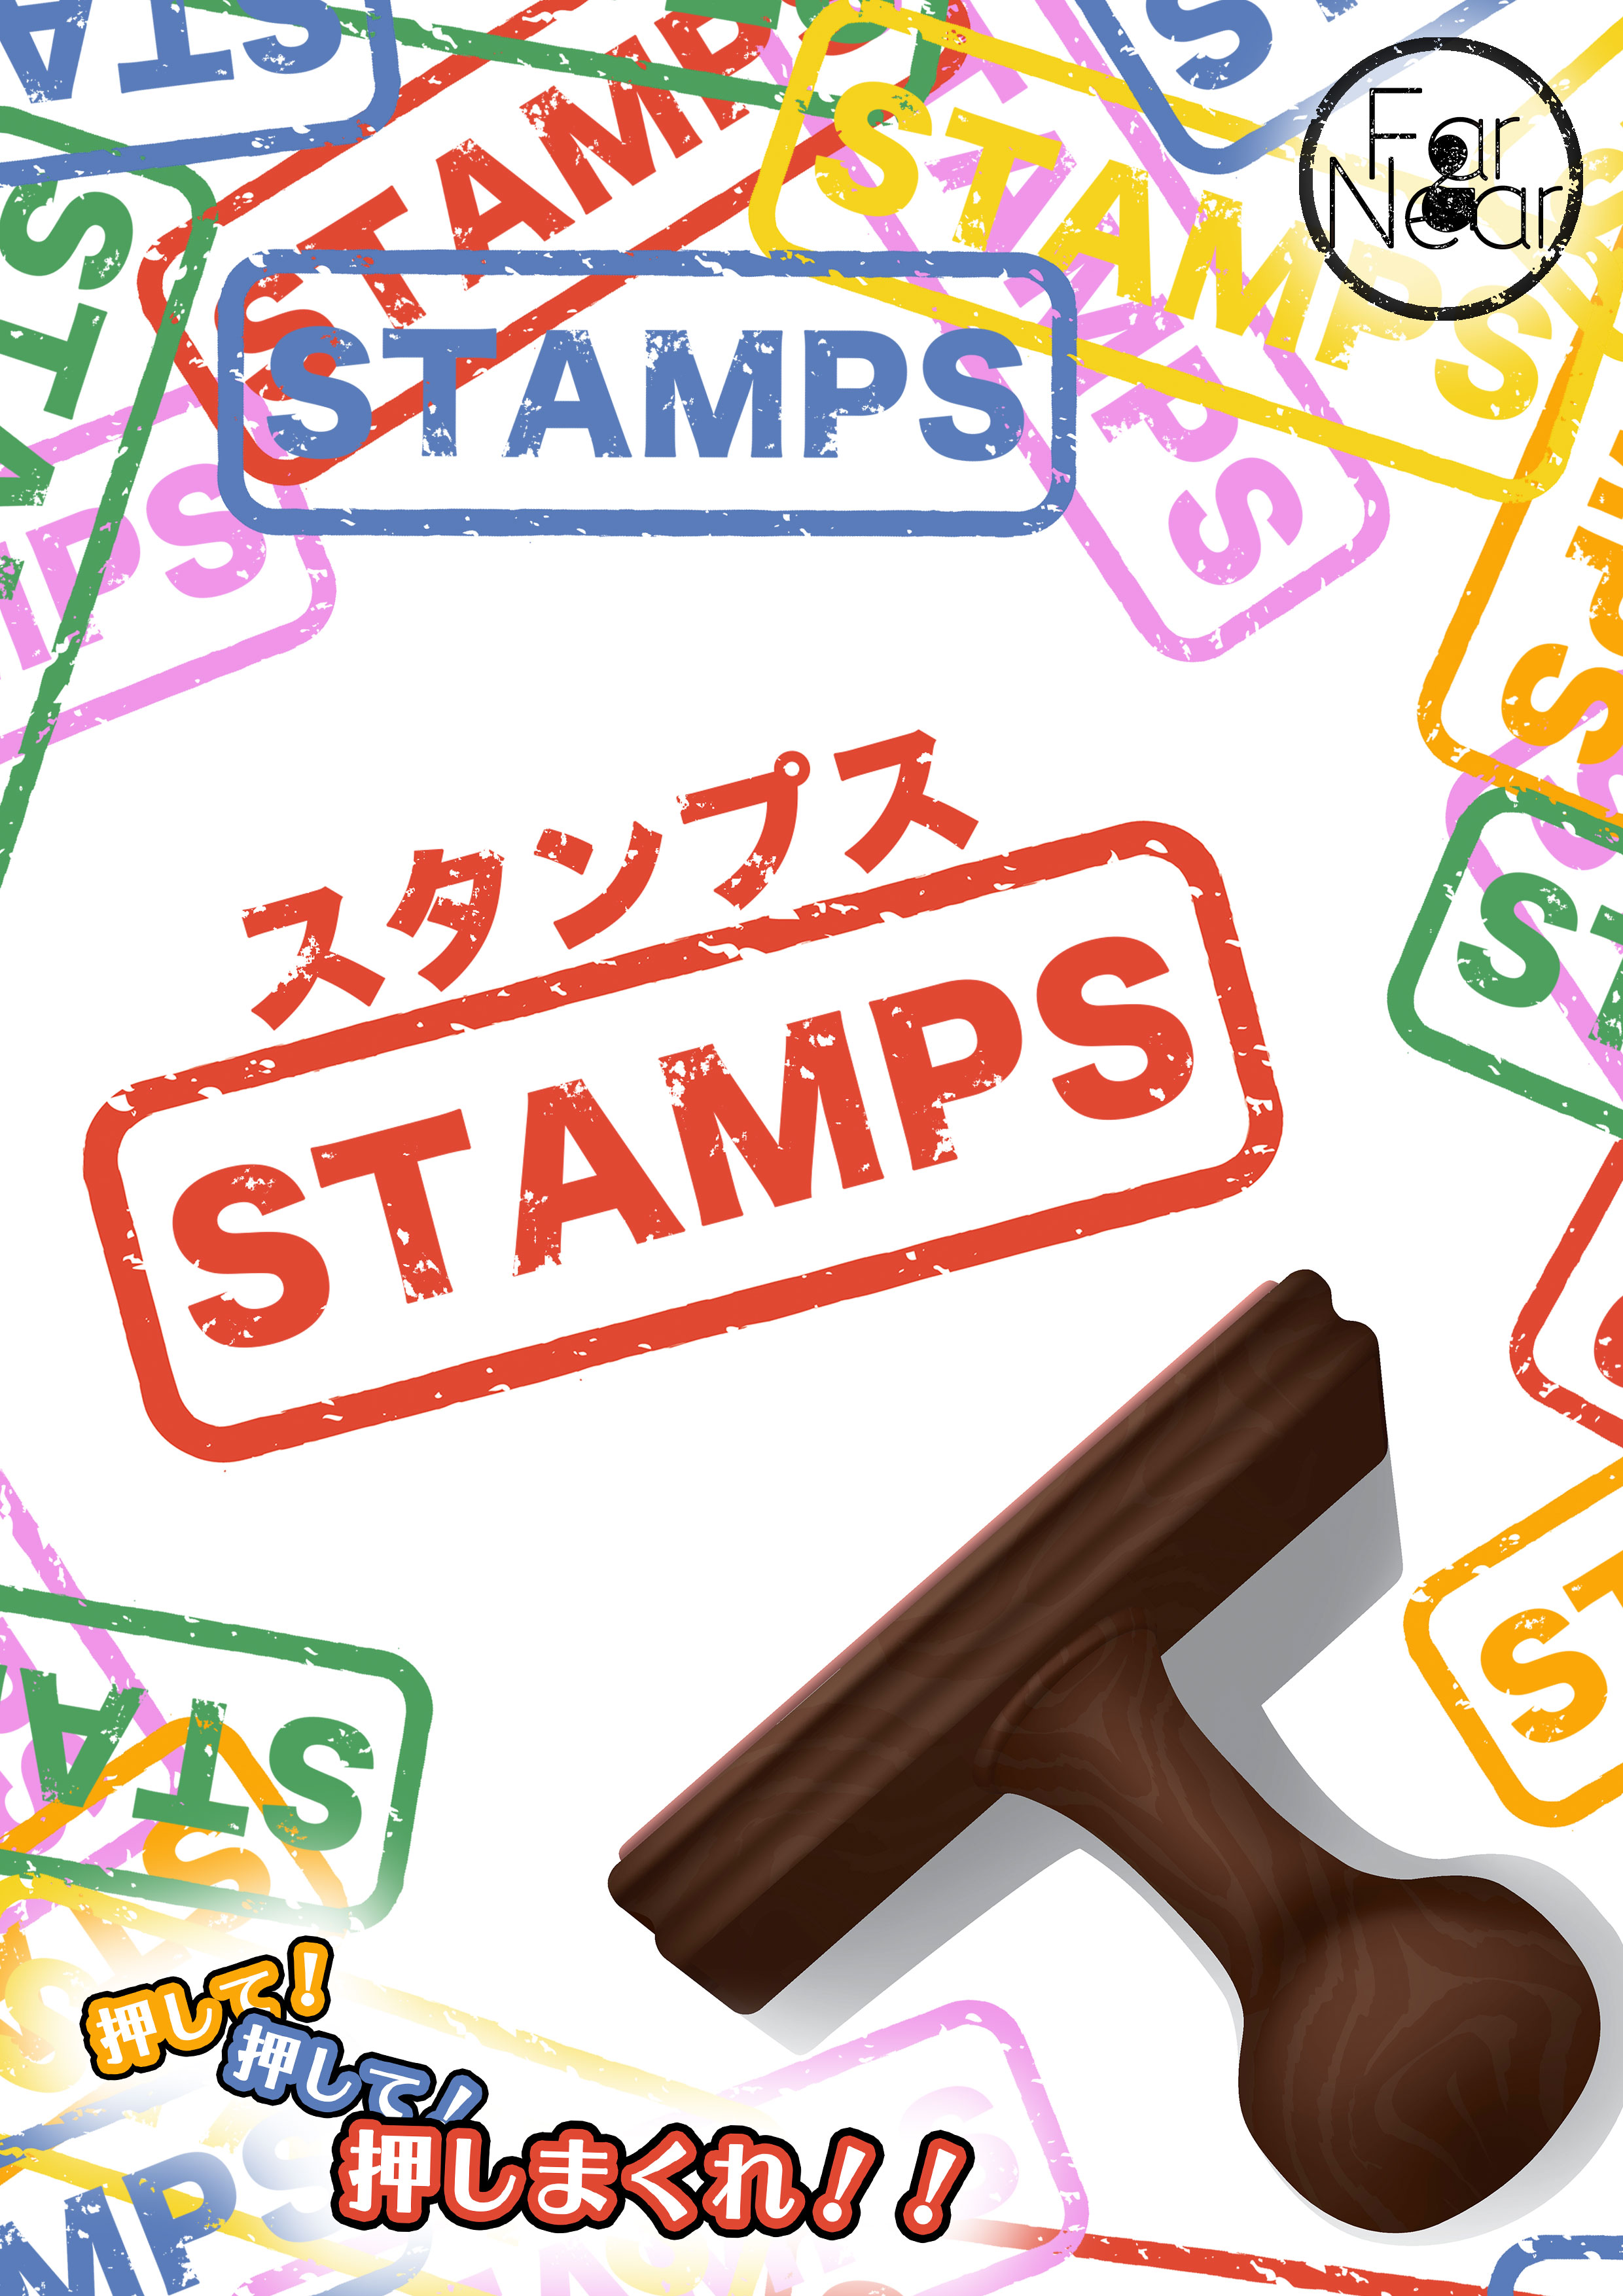 STAMPS(8/7,8,9(土,日,月)開催)